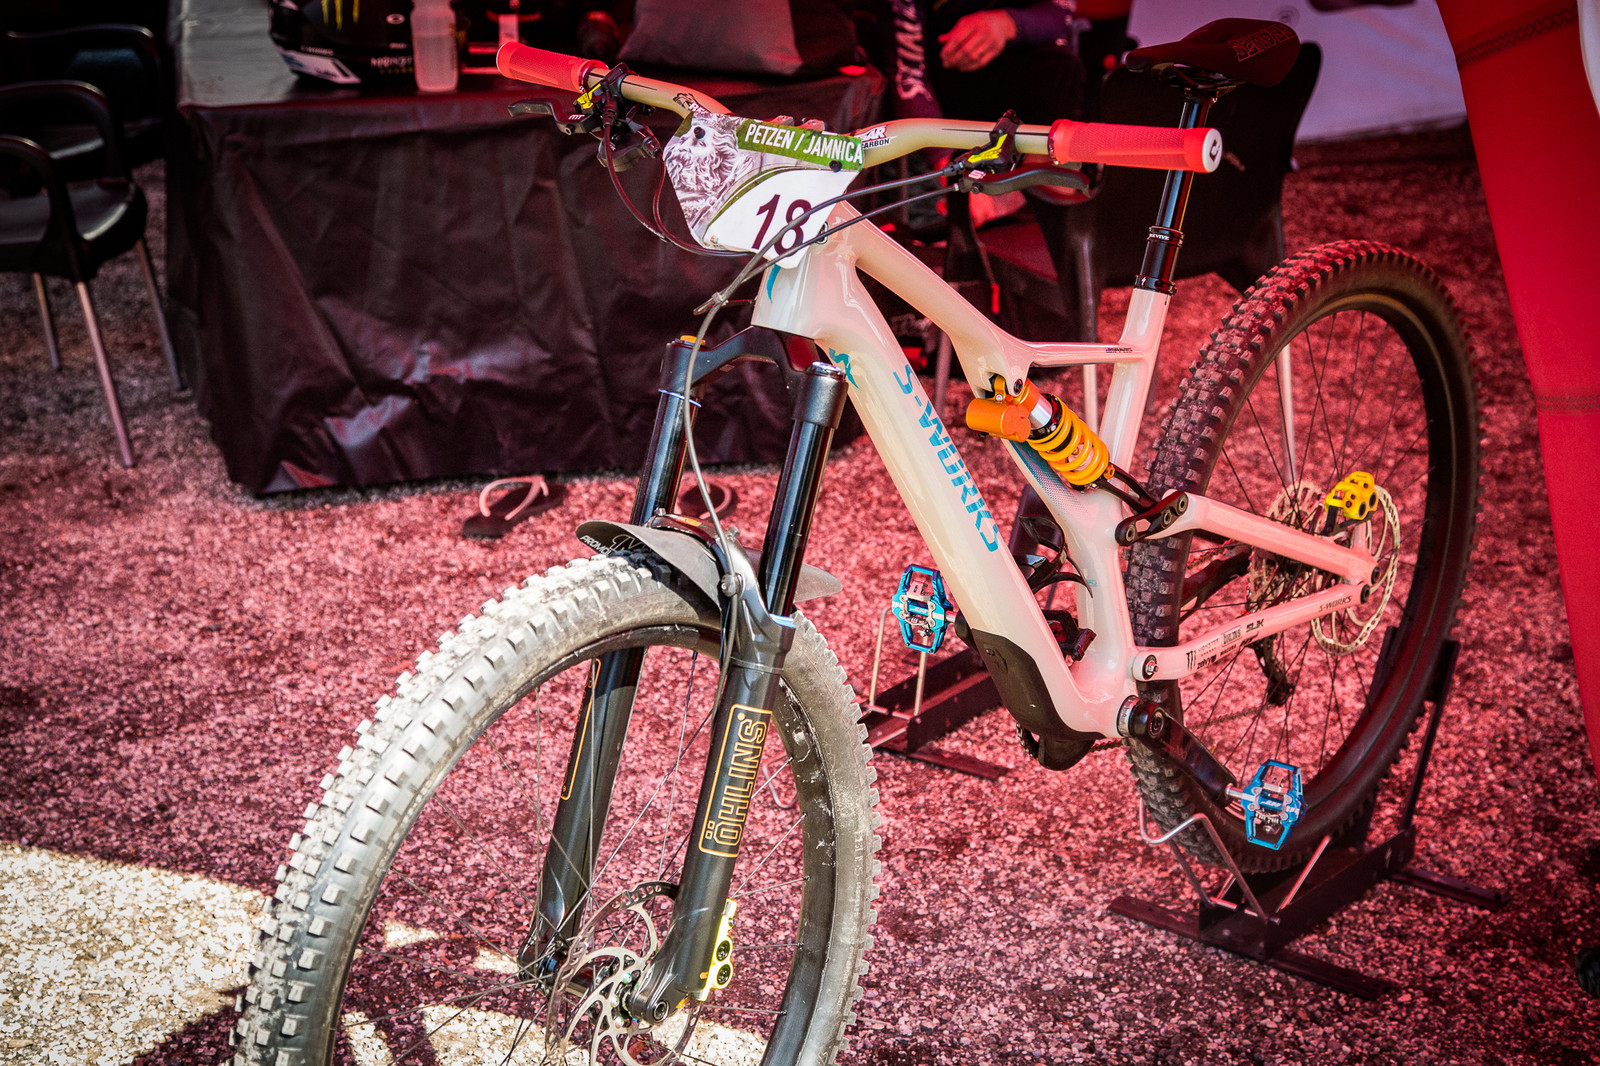 EWS PIT BITS - Jared Graves' Specialized Stumpjumper - PIT BITS - Enduro World Series, Petzen - Mountain Biking Pictures - Vital MTB